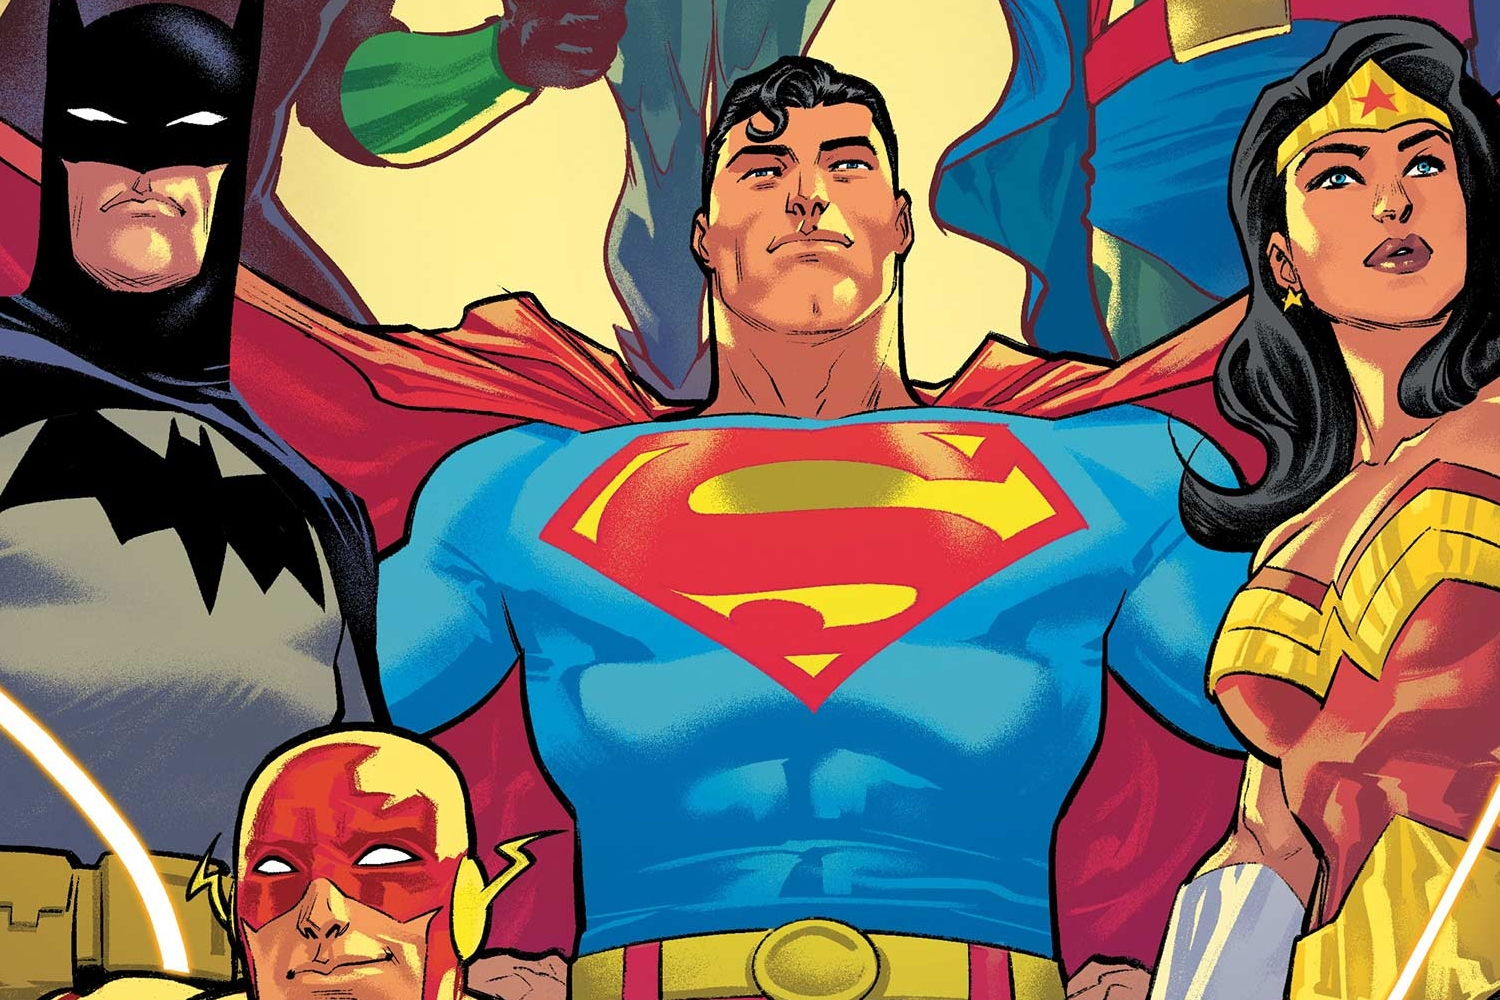 J.M. DeMatteis returns to the team with 'Justice League Infinity'